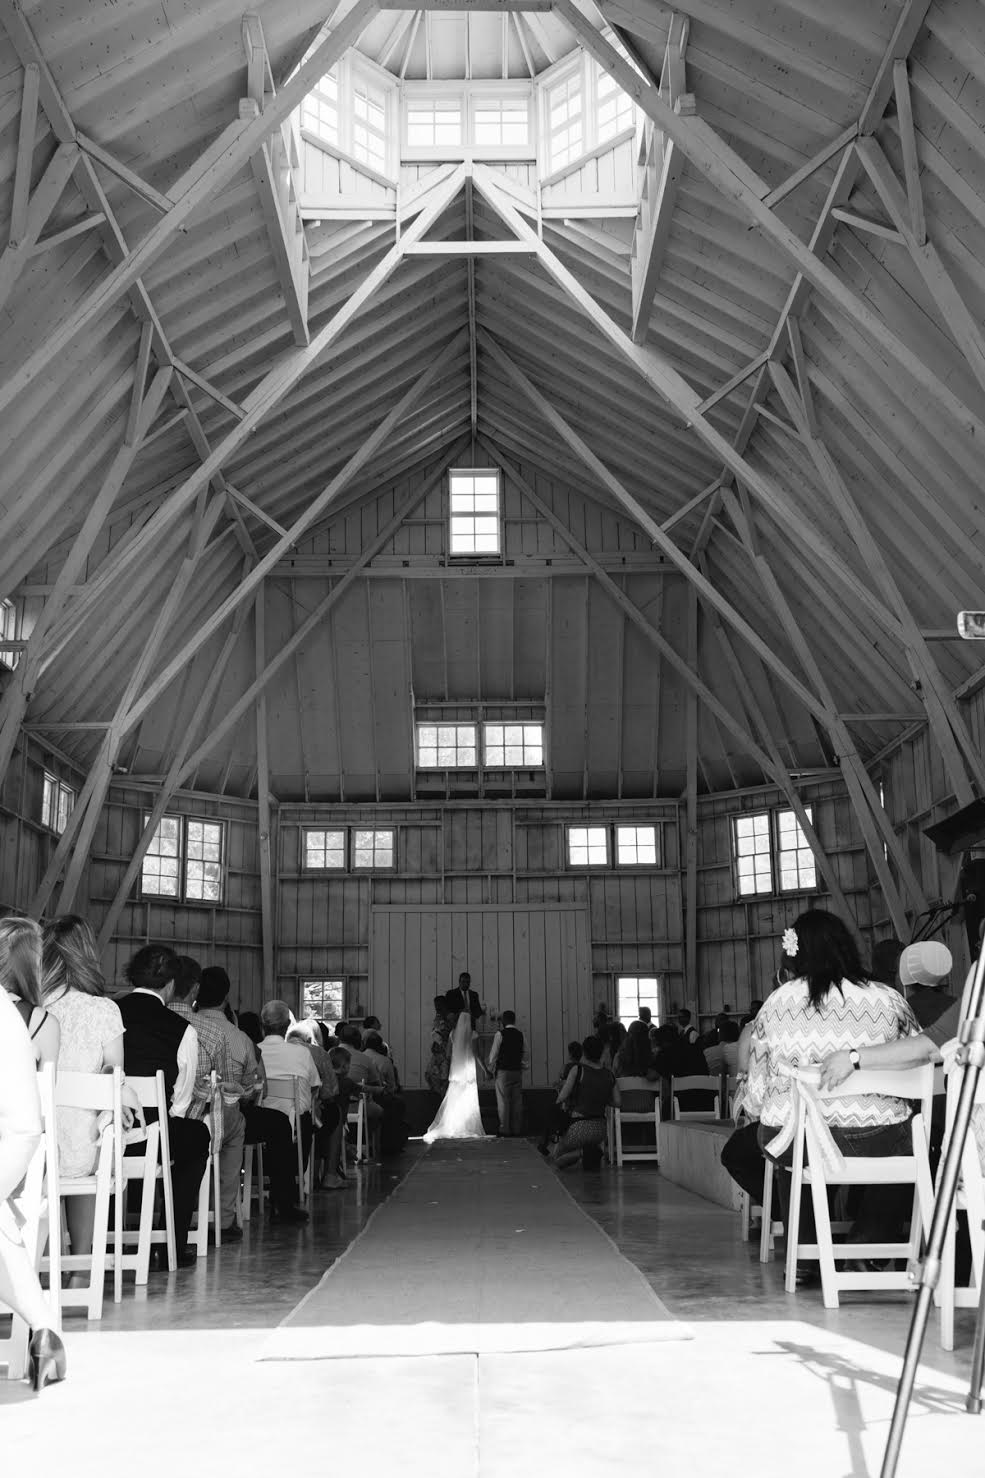 Wedding ceremony in a large barn